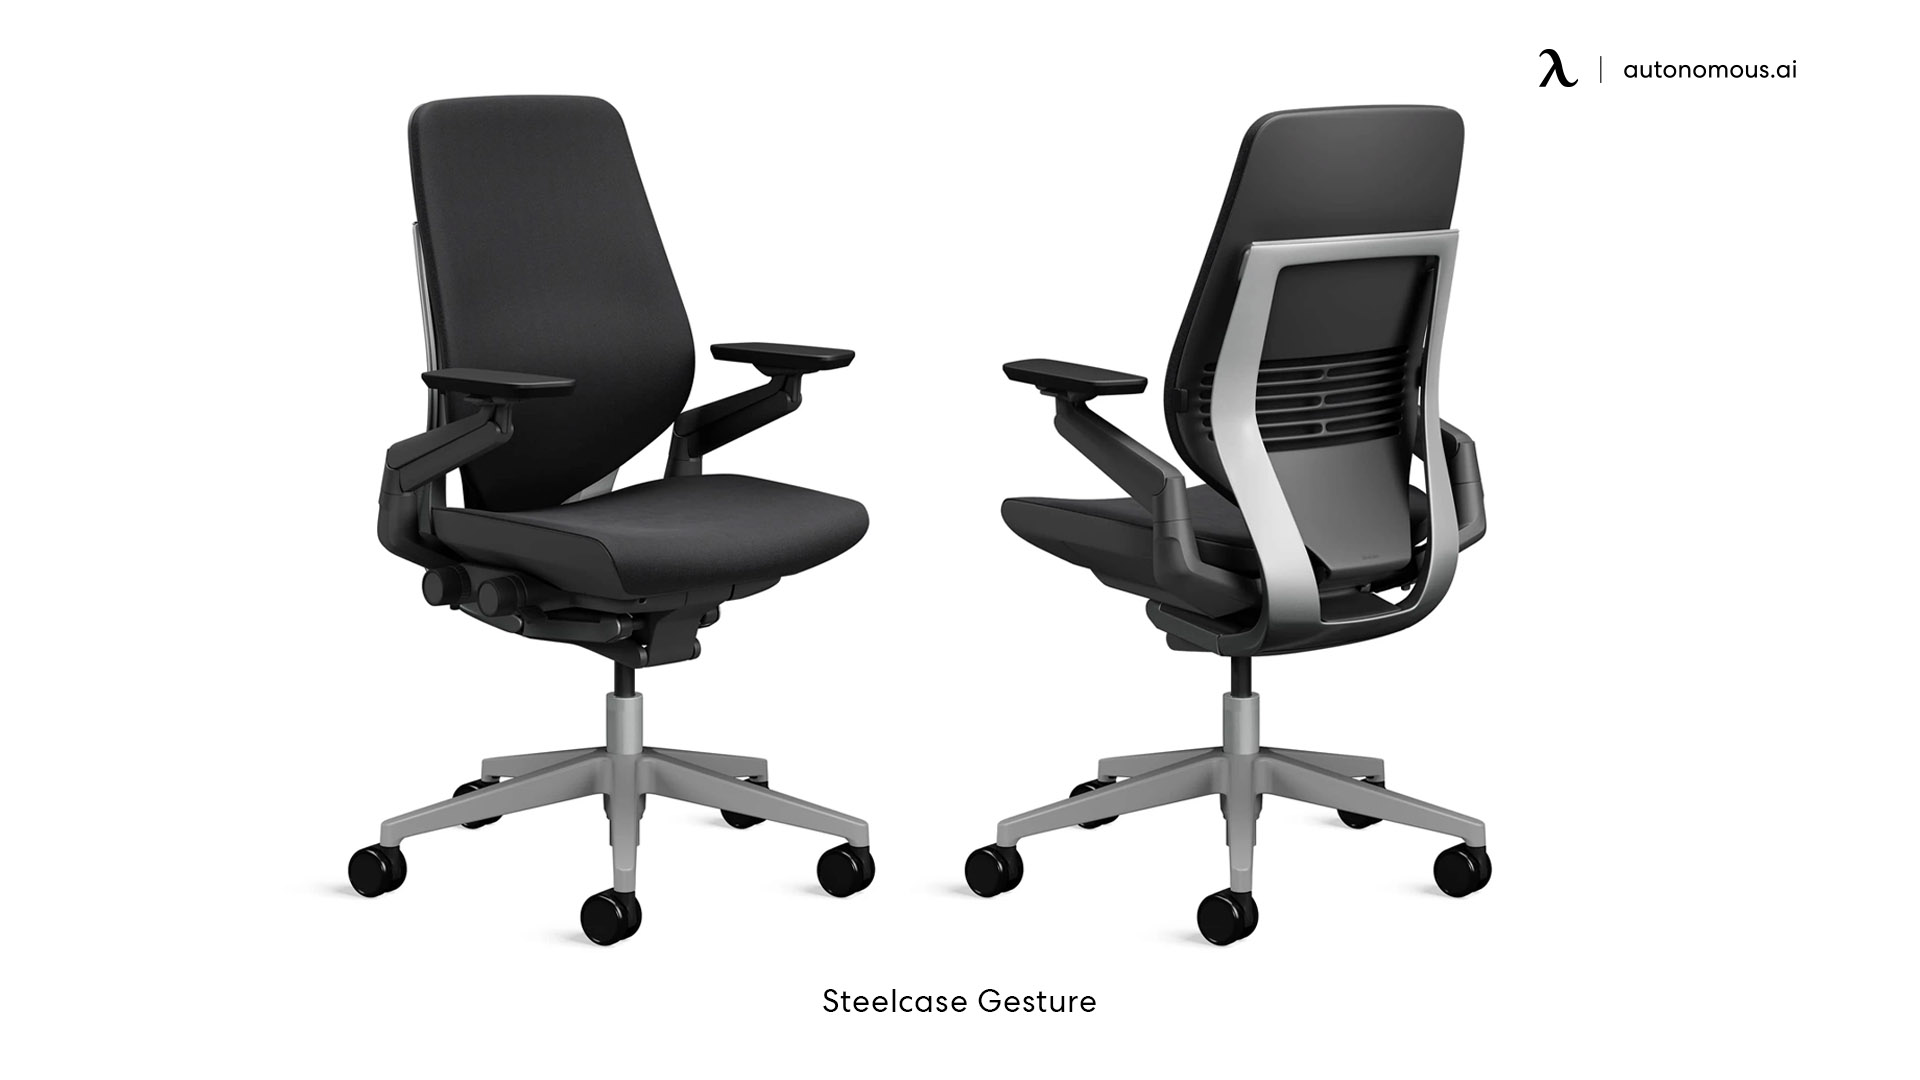 Steelcase Gesture small space desk chair